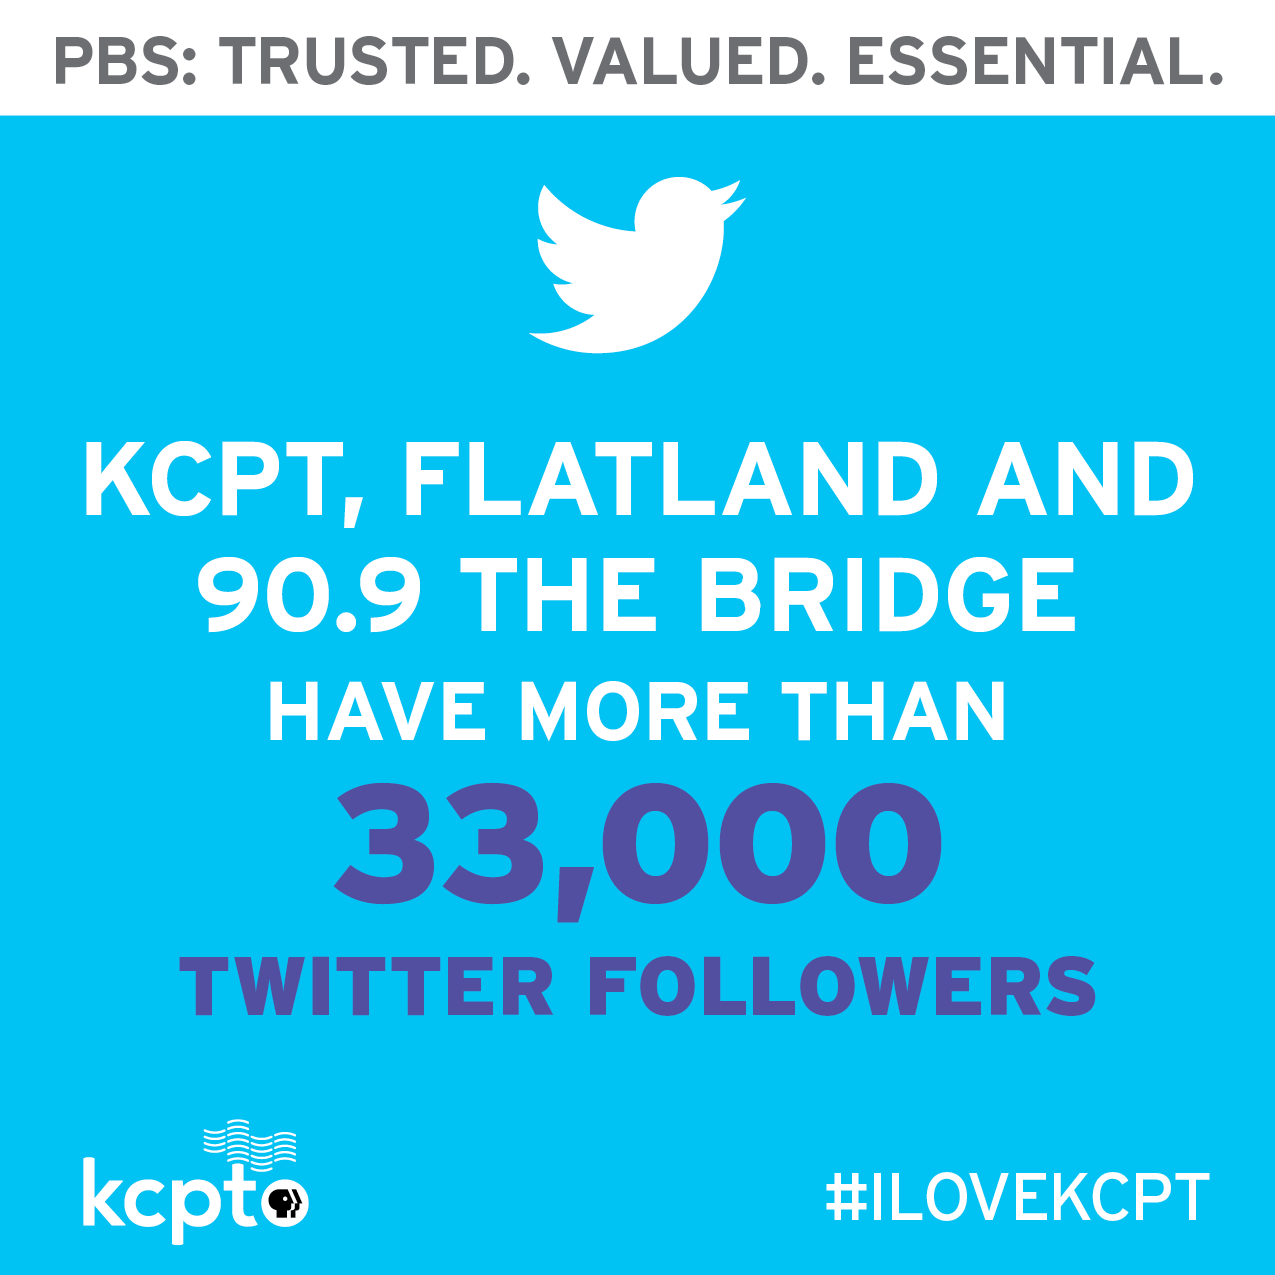 KCPT, Flatland and 90.9 the Bridge have over 33 thousand Twitter followers.